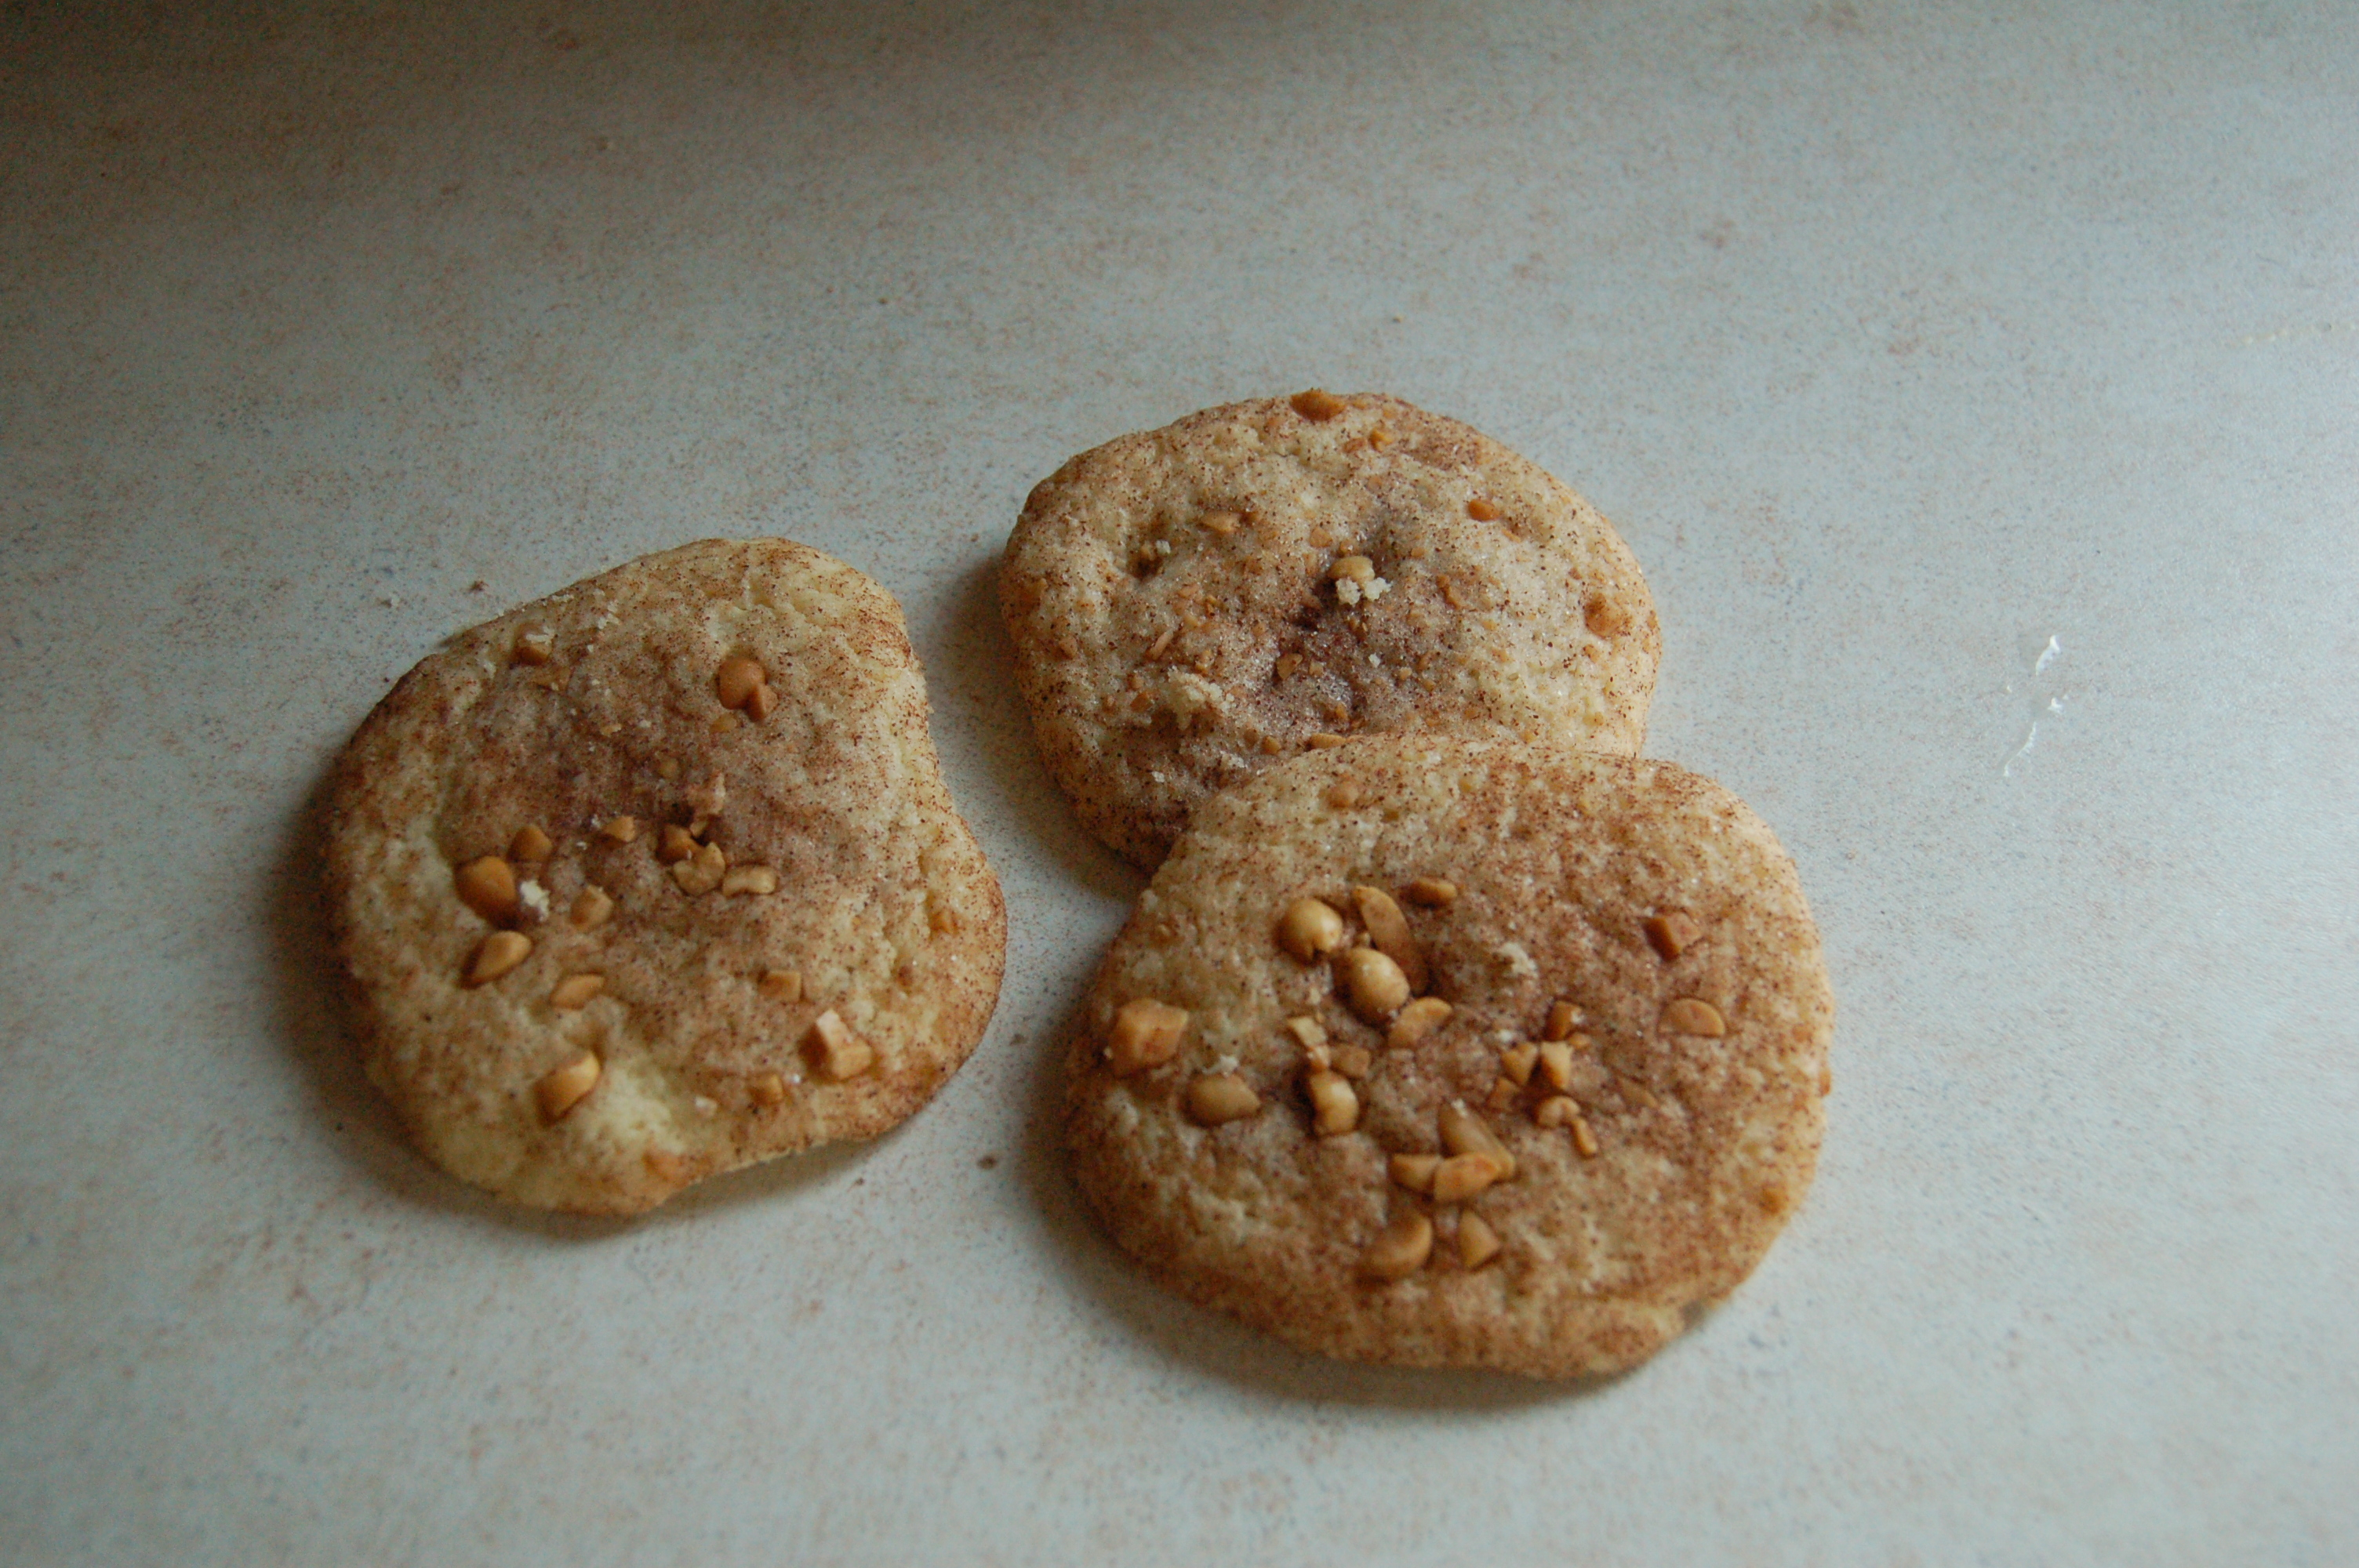 Double peanutbutter cookies